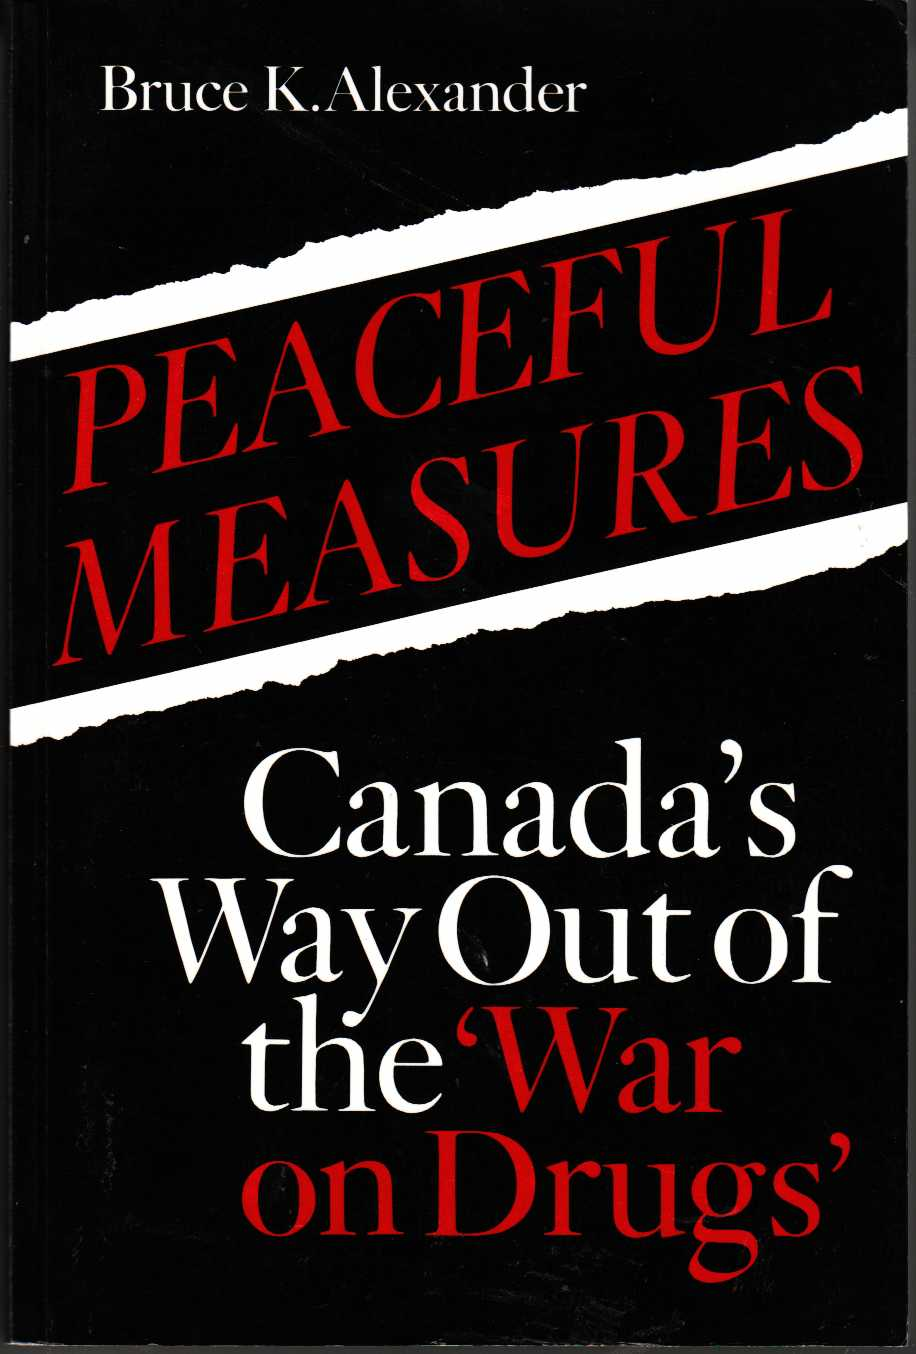 Image for Peaceful Measures Canada's Way Out of the 'War on Drugs'